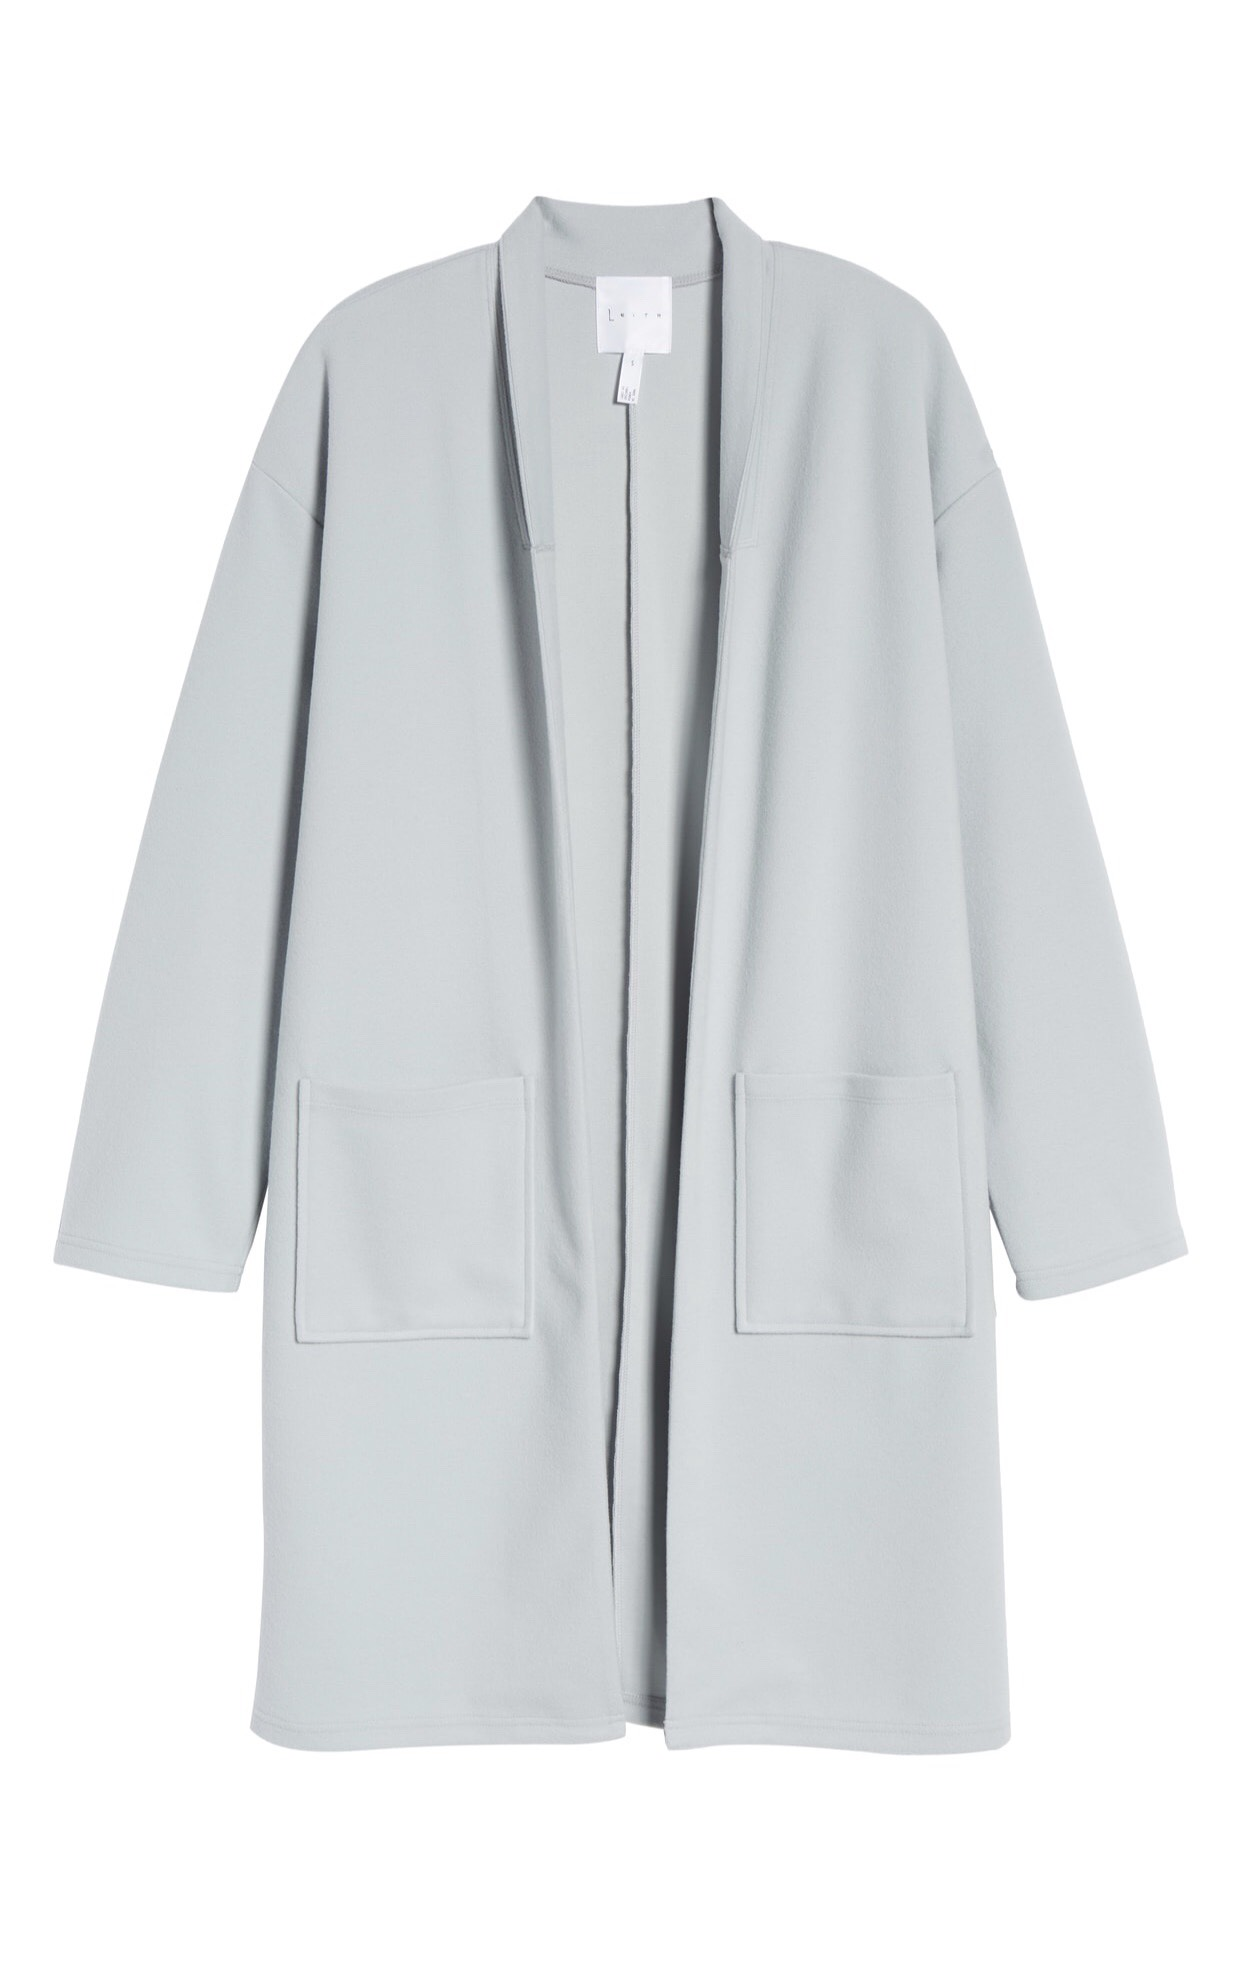 Leith Midi Coat {$59.90} - After sale: $89